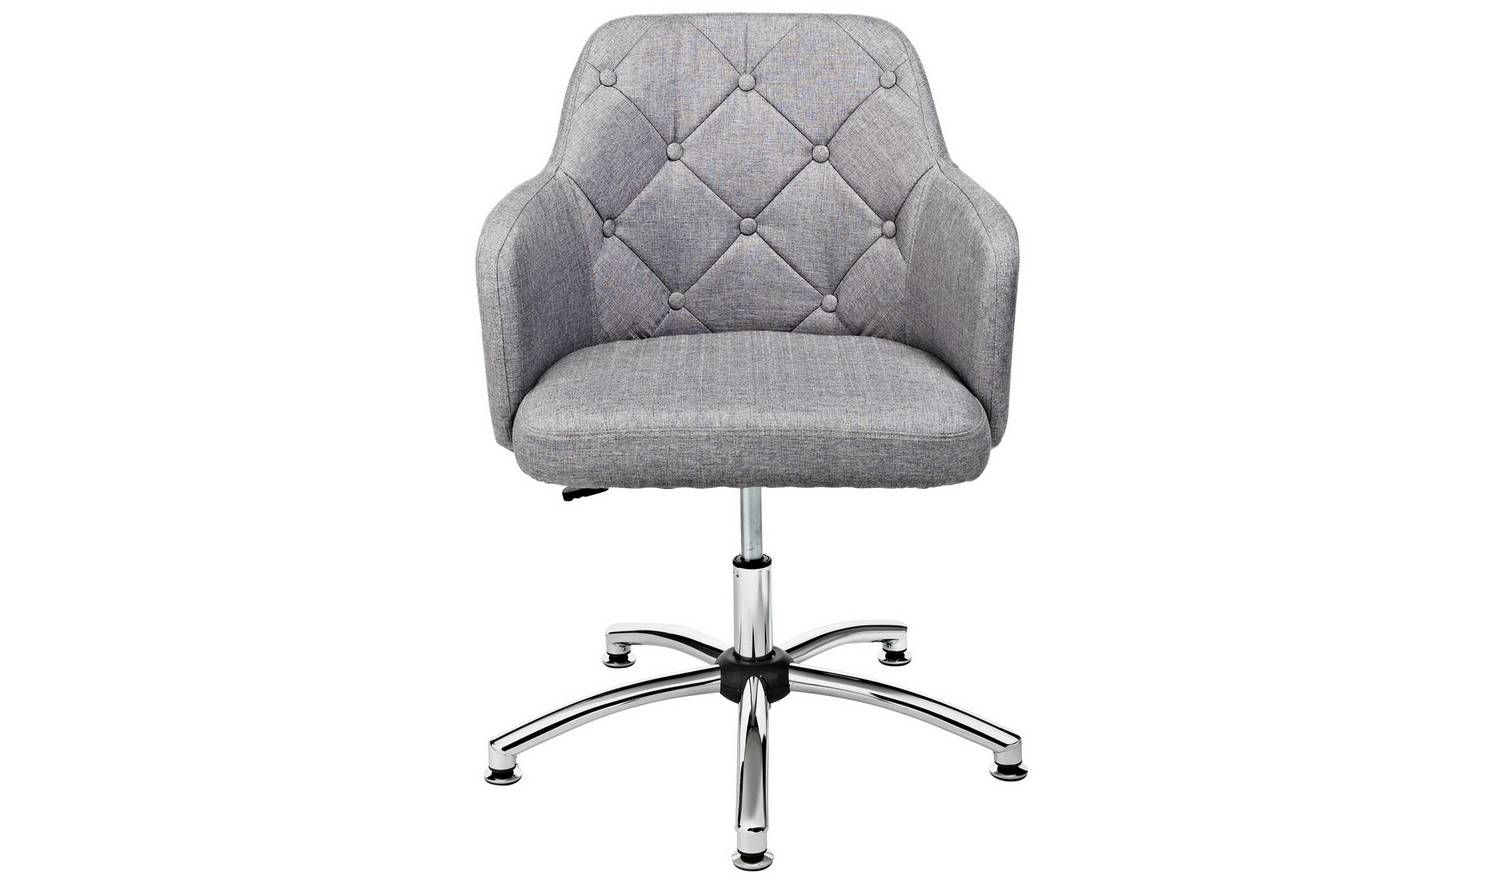 Buy Argos Home Button Back Fabric Office Chair Grey Office Chairs Argos Office Chair Grey Office Grey Chair